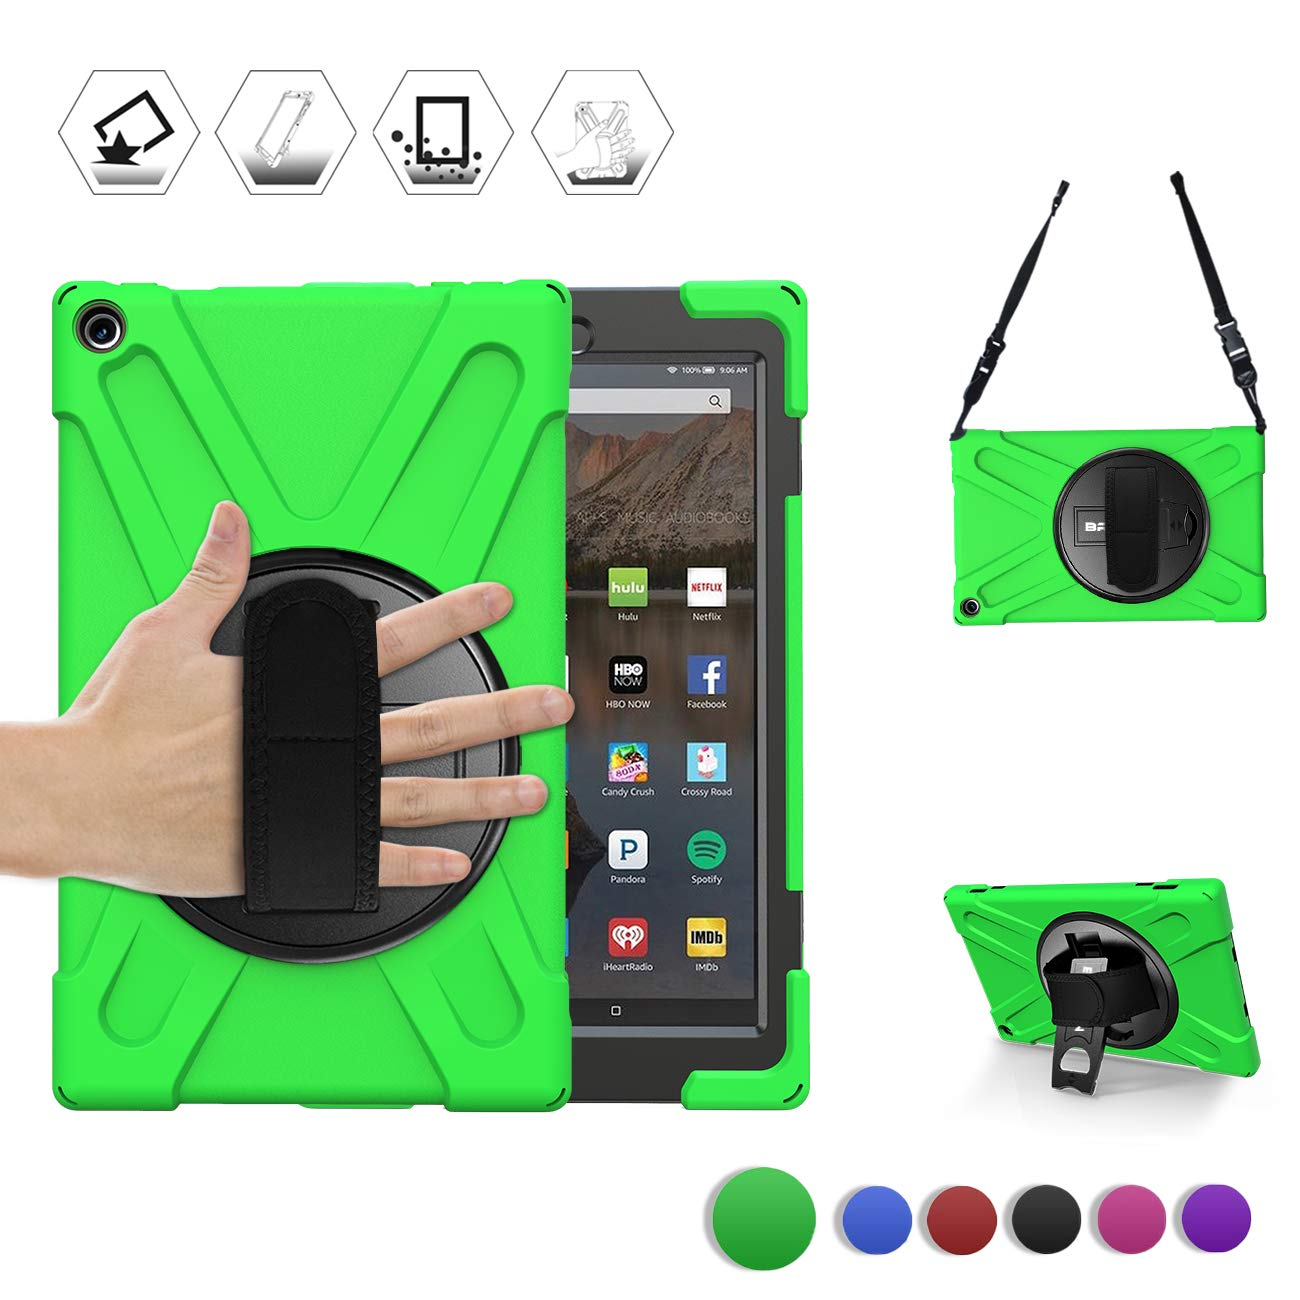 BRAECN Amazon Kindle Fire HD 10 Case 7th/9th Gen,[Hand Strap] [Shoulder Strap] [Rotating Kickstand] Heavy Duty Protection Rugged Case for Amazon Fire HD 10.1 Inch Tablet 2019/2017 Release (Green)